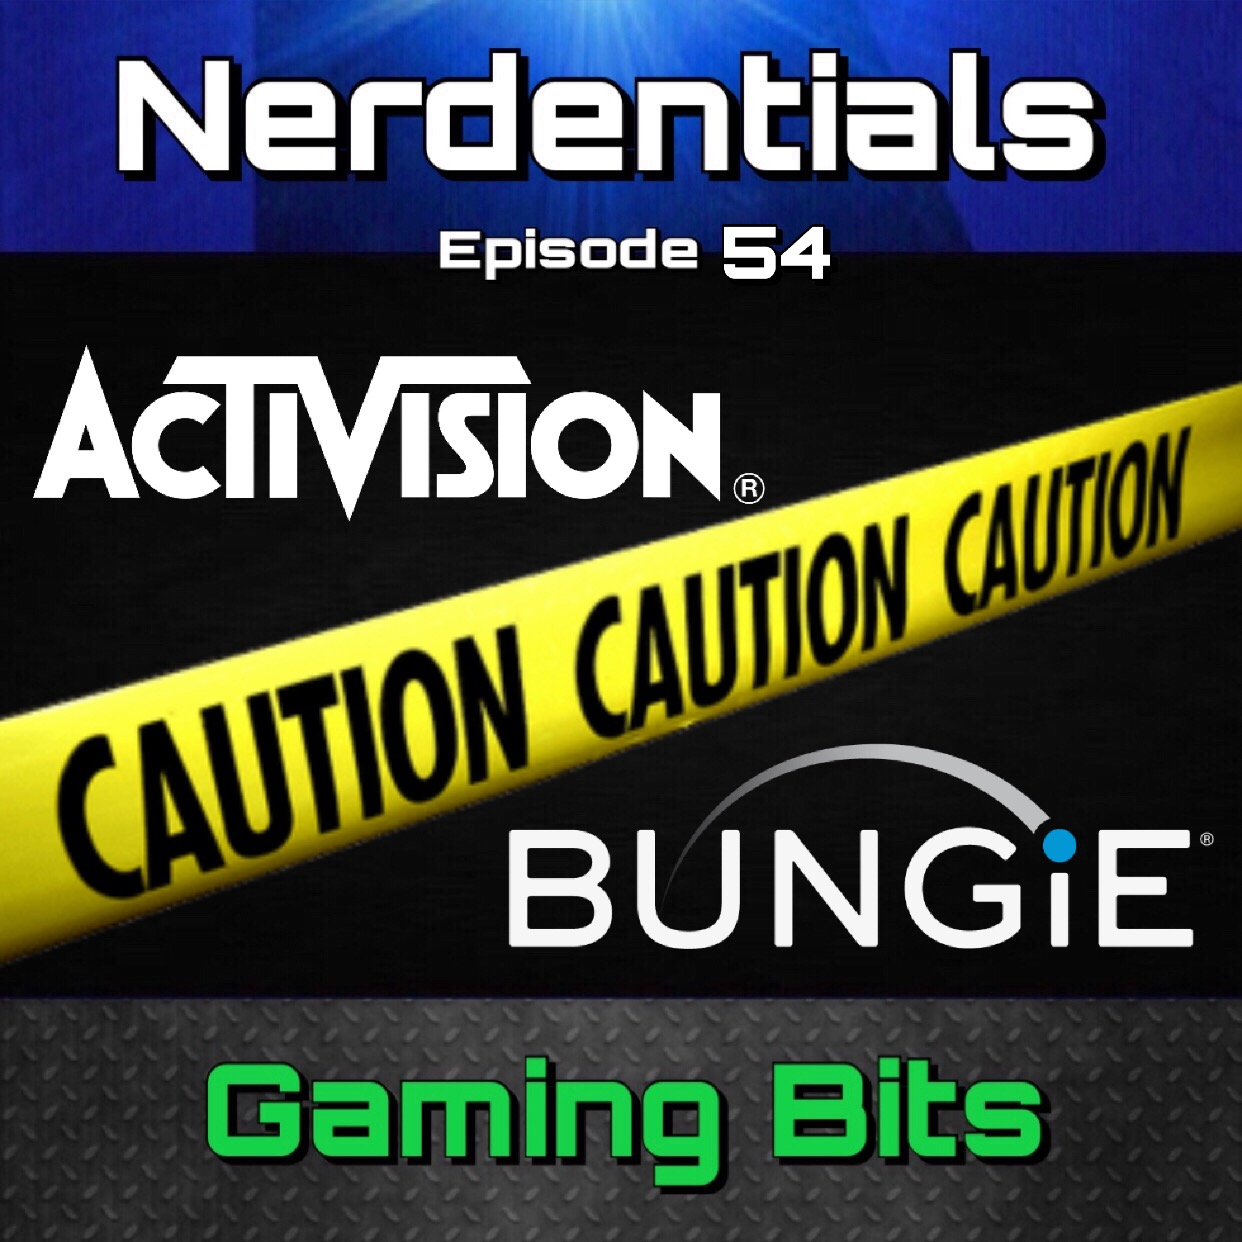 - Welcome to Nerdentials! Your weekly dose of the nerdy essentials. Covering Film, TV, Video Games and Comics.This Week it's a double episode of the gaming conversation! Your Hosts Joe and Nick cover the huge industry changing news of Bungie and Activision splitting early from their 10 year contract and what these things may mean for the industry and the franchise in our future.